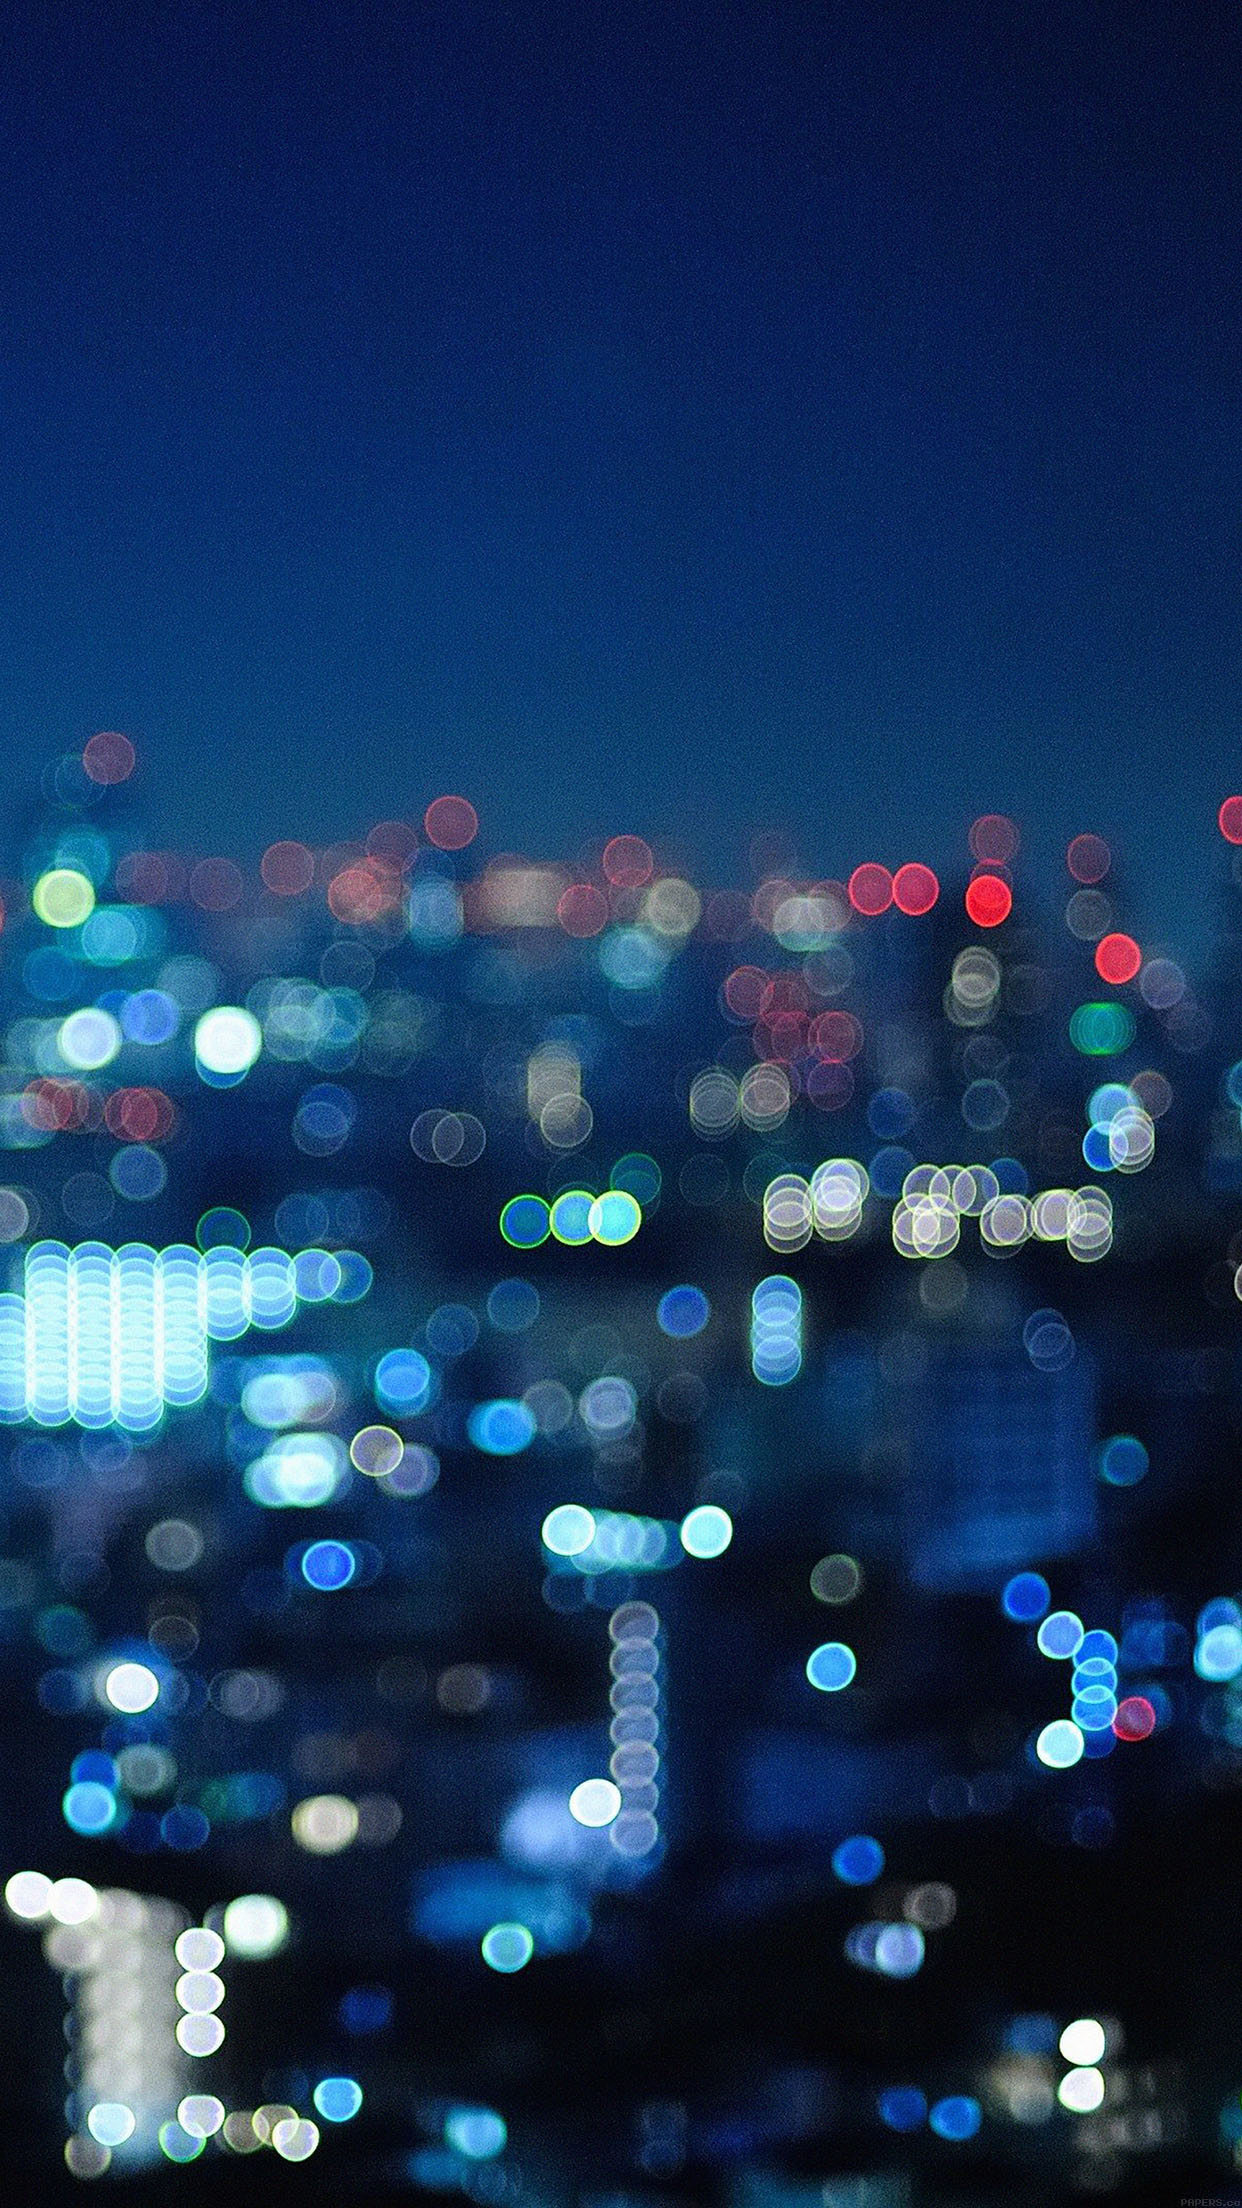 I Love Papers Md40 Wallpaper Crying City Night Bokeh